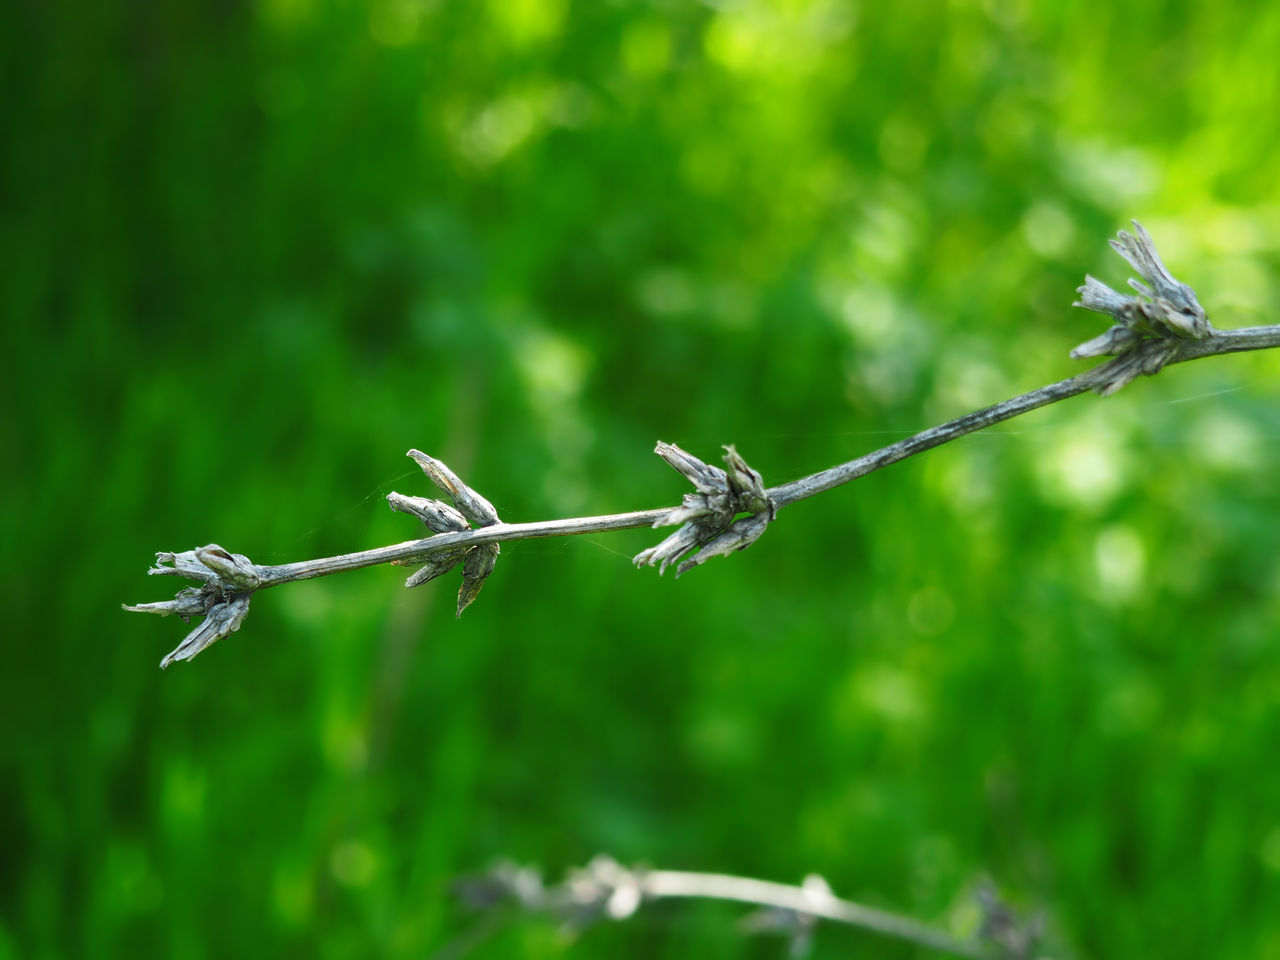 A tree branch on a green background. Grey and Green. Beauty In Nature Defocused Day Summer Outdoors Uncultivated Close-up Selective Focus No People Focus On Foreground Plant Nature Herbal Sunyday Flowers, Nature And Beauty Branches No Leaves Nature_collection Forest Photography Background